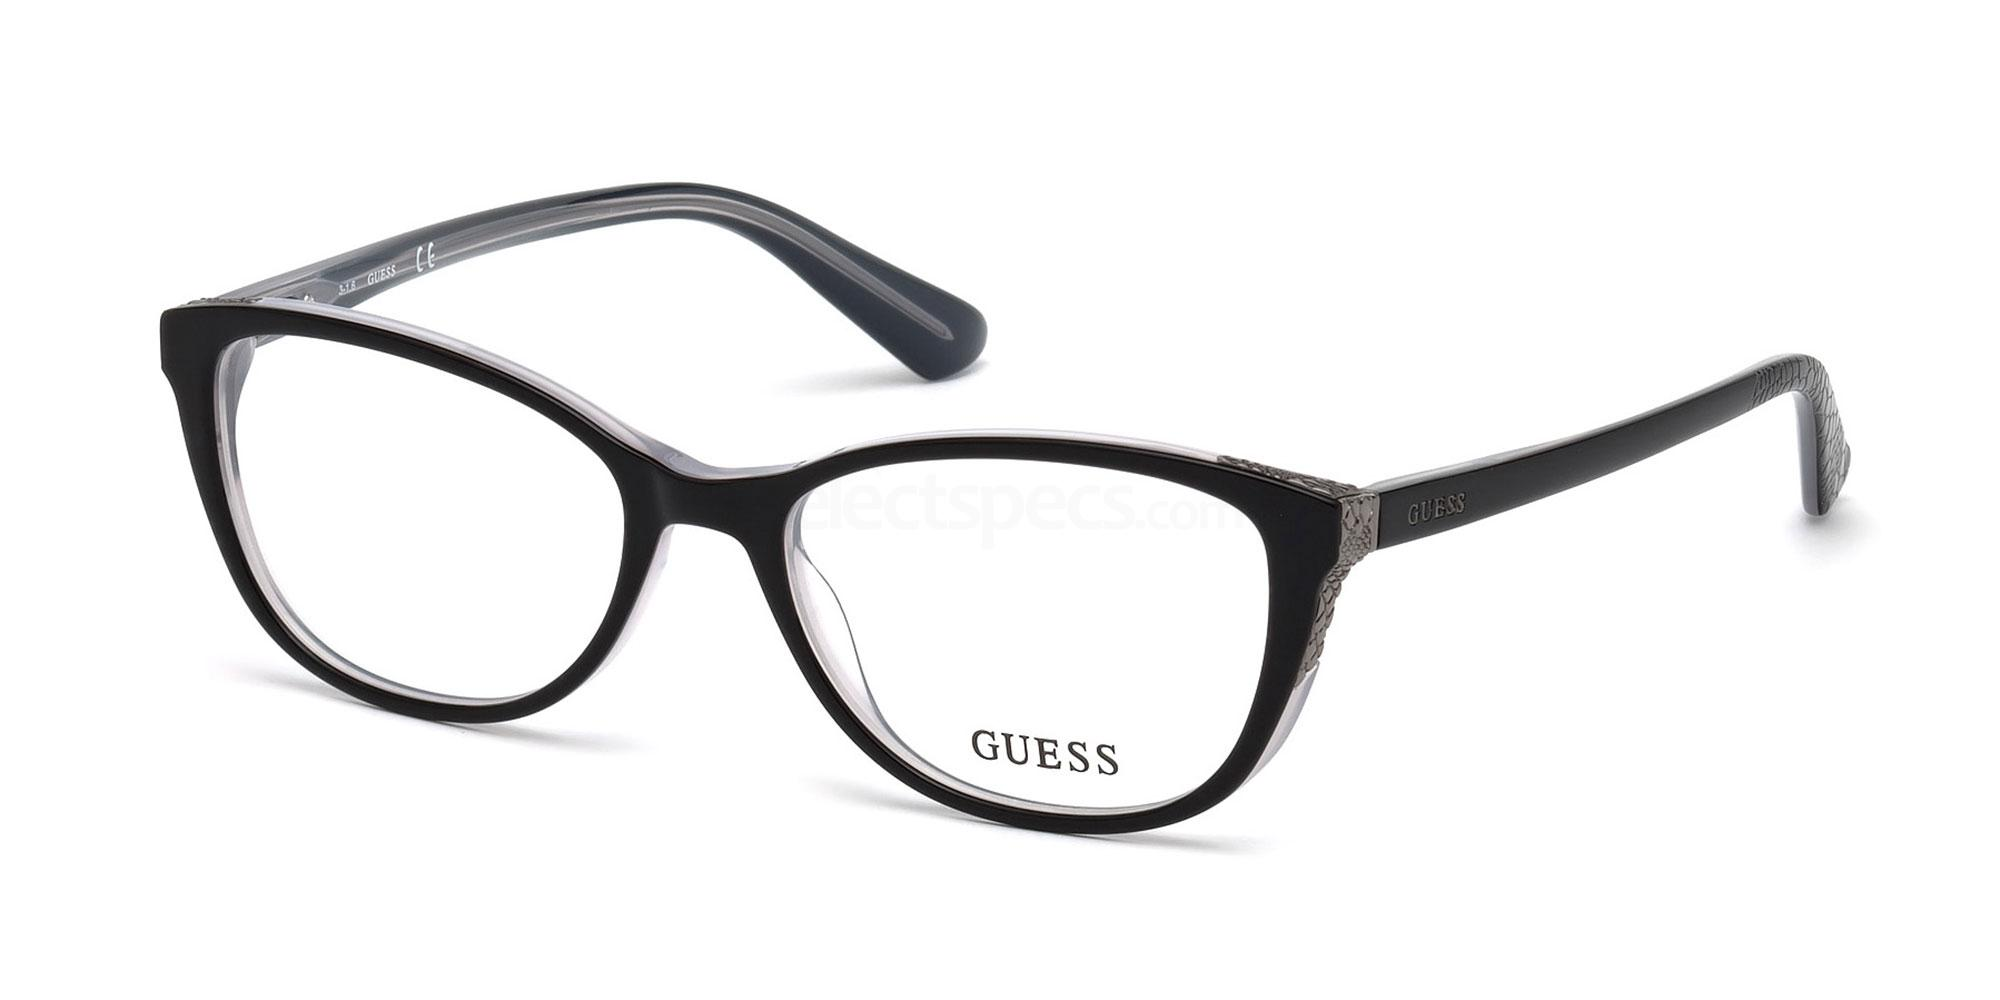 7b65f5e577 Guess GU2589 glasses. Free lenses   delivery